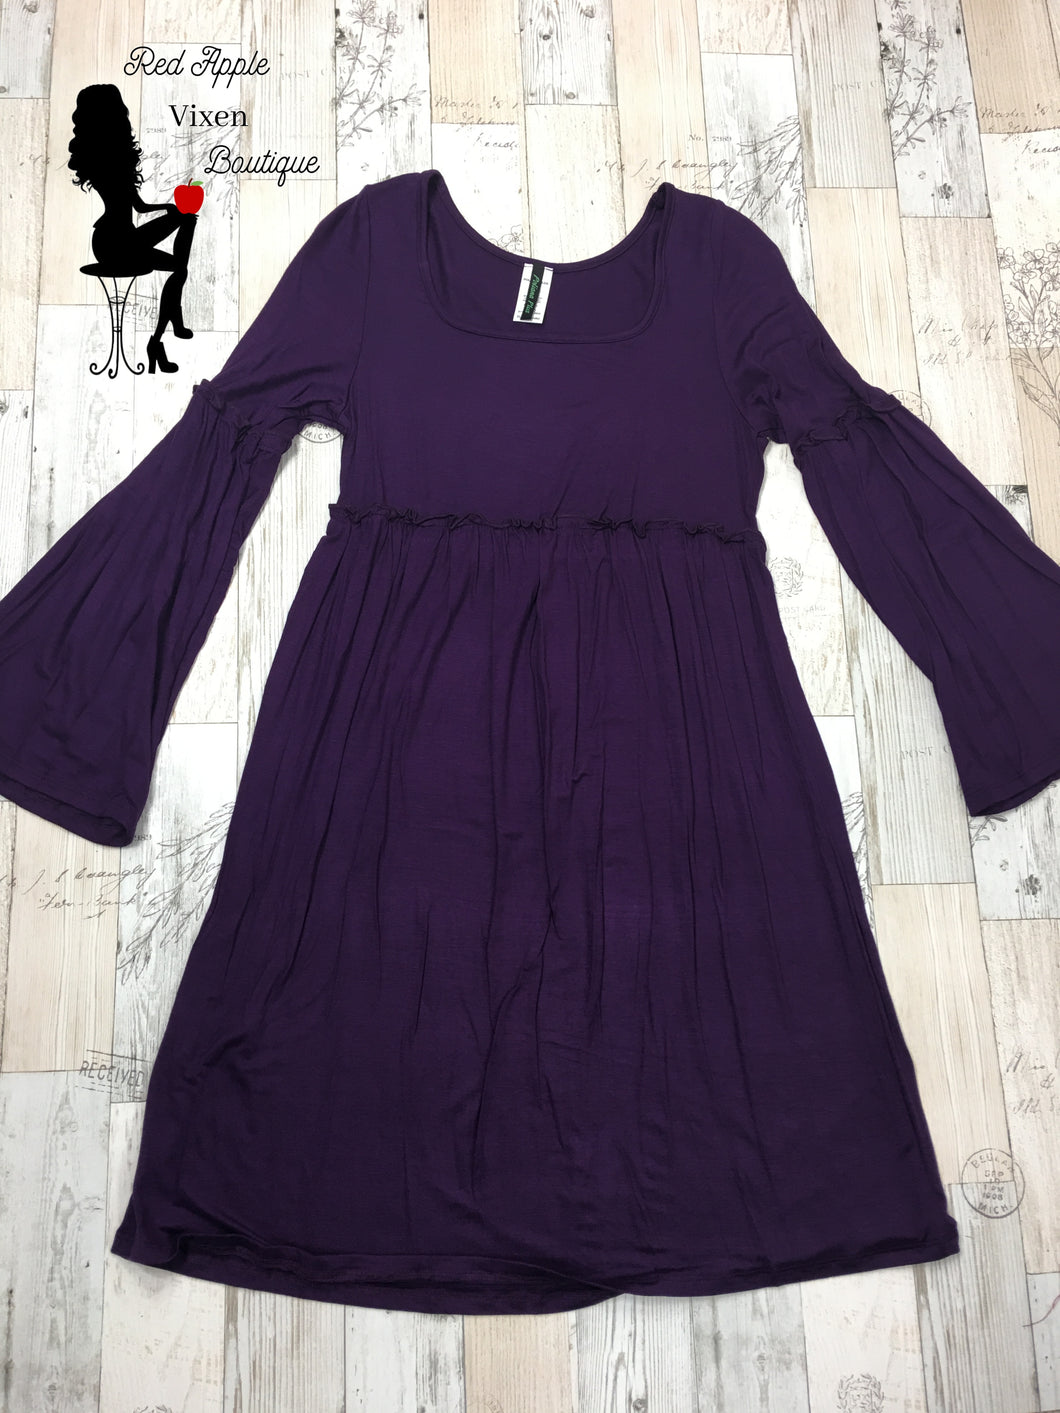 Solid Purple Bell Sleeve Dress - Sassy Chick Clothing